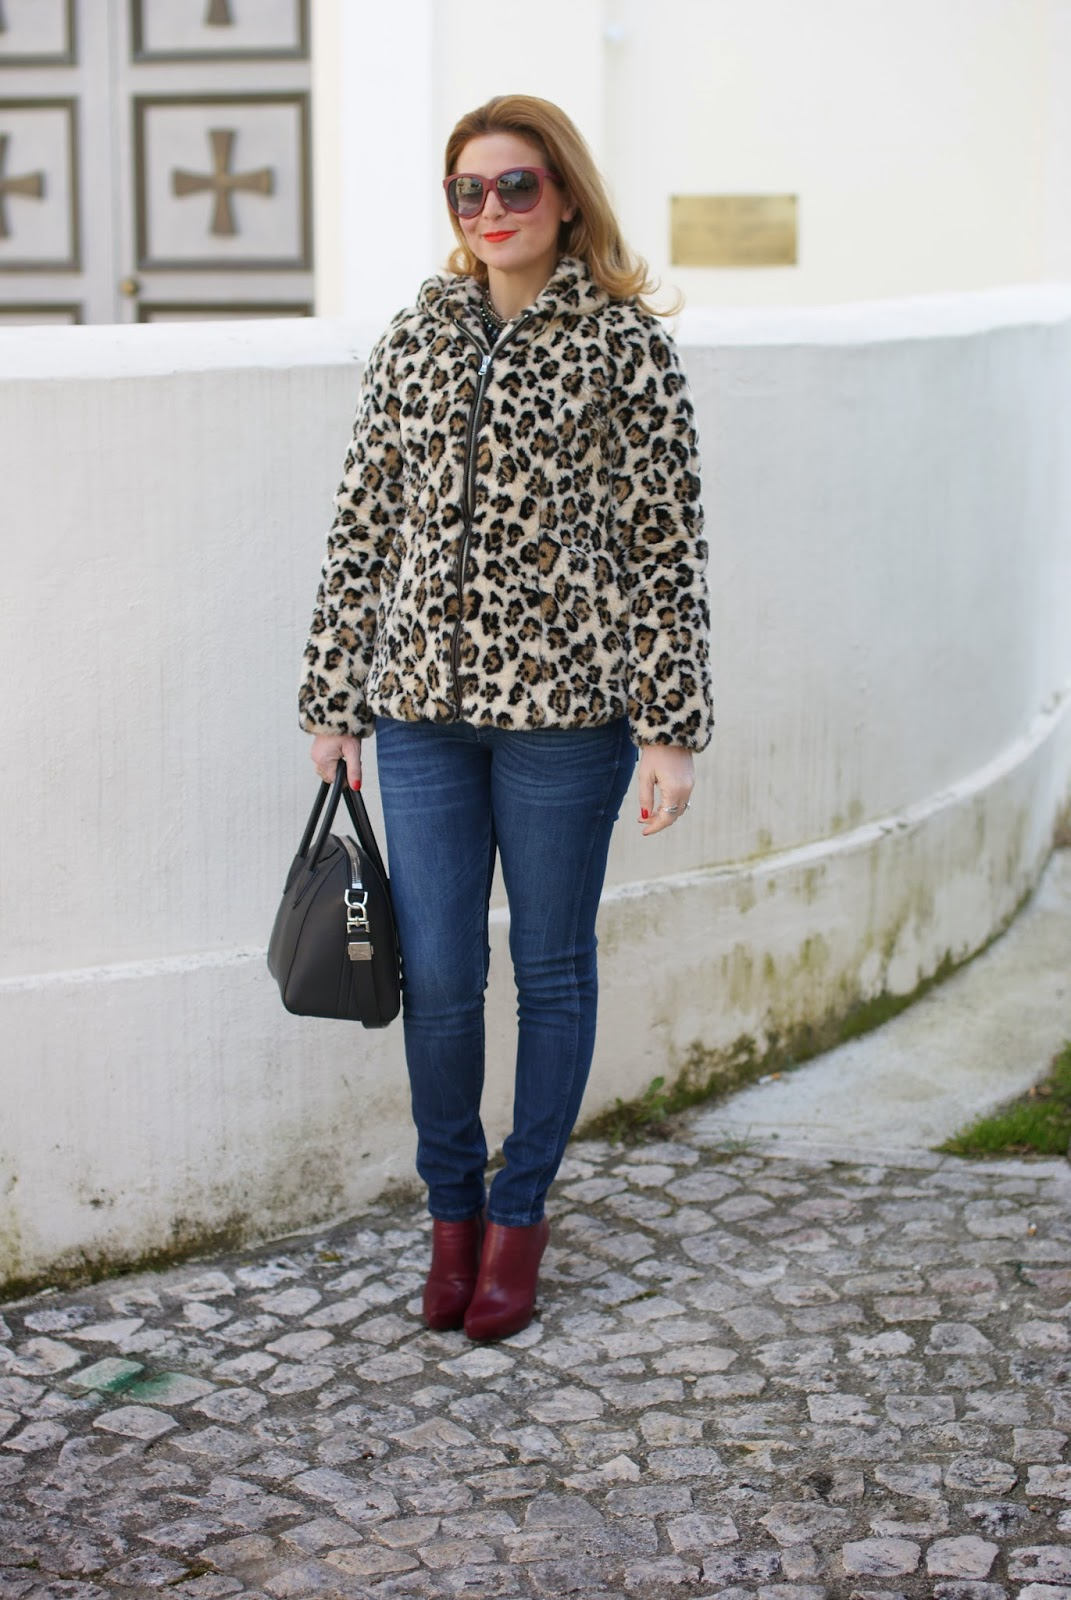 How to wear faux fur, ecofur trend, leopard faux fur, Givenchy Antigona bag small, Fashion and Cookies fashion blog, fashion blogger